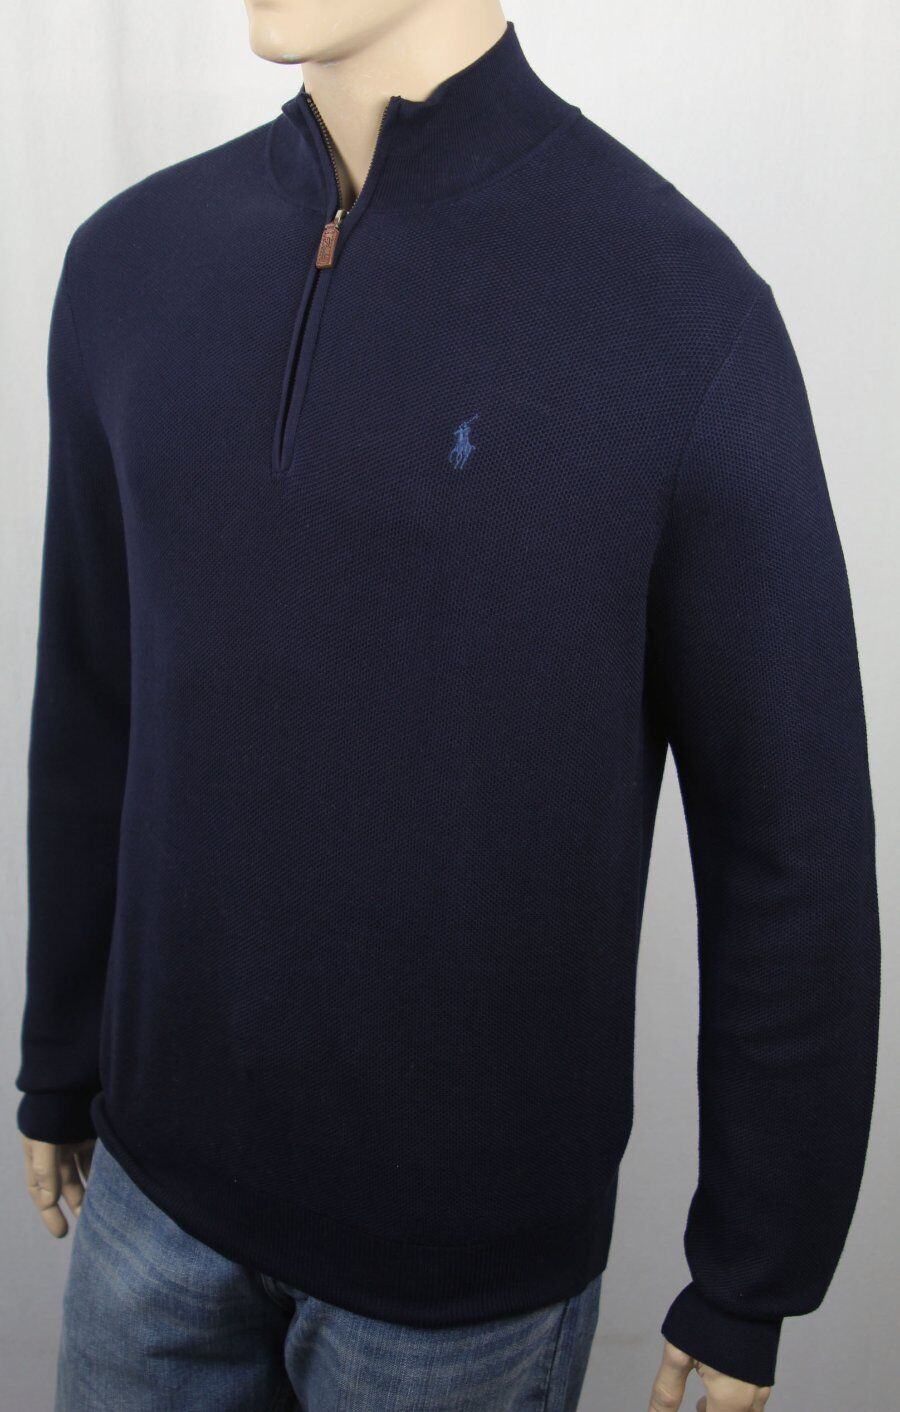 Polo Ralph Lauren Navy bluee 1 2 Half Zip Mesh Sweater bluee Pony NWT